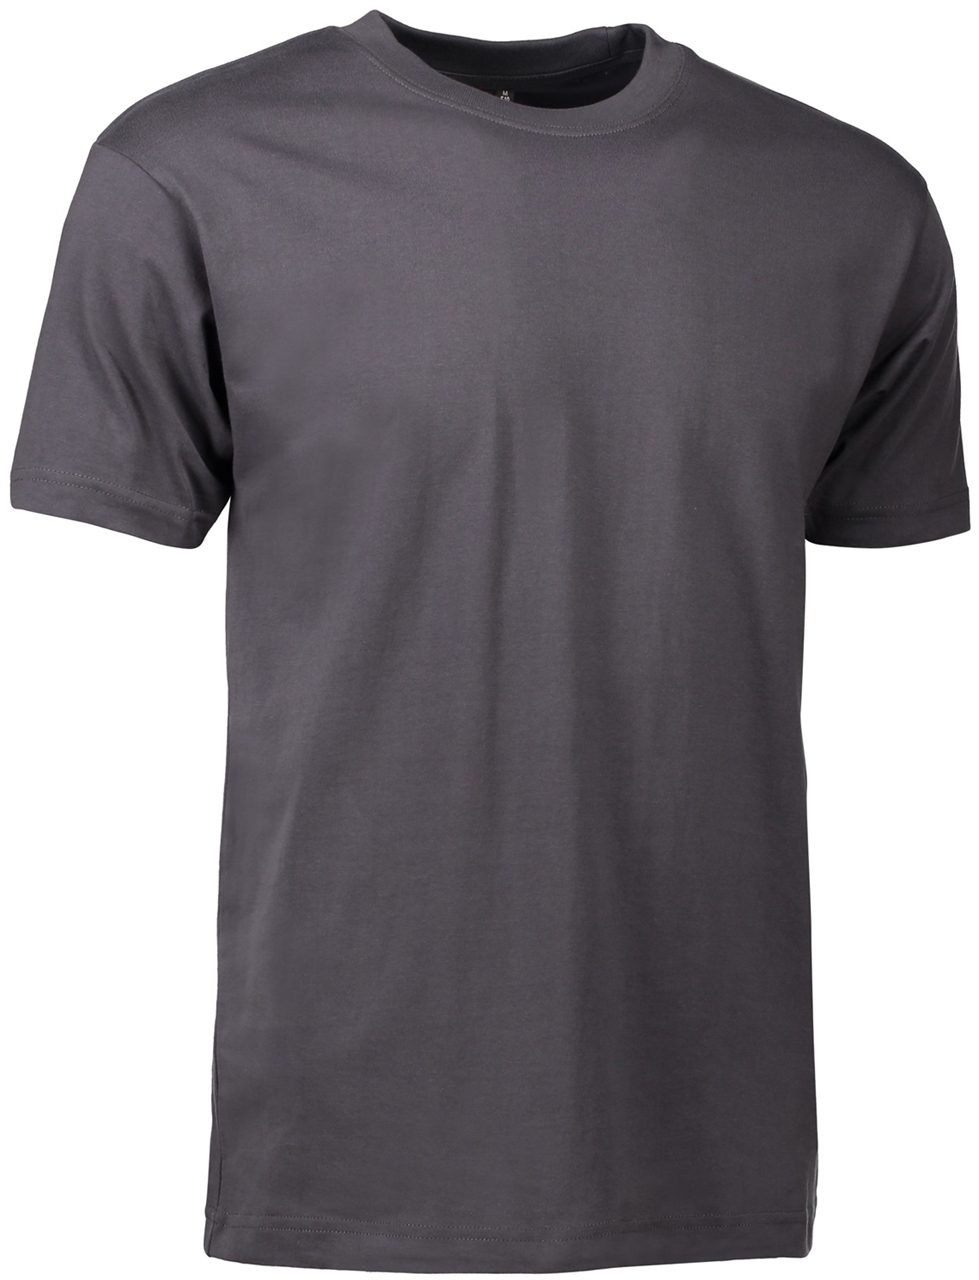 Picture of T-time t-shirt 0510 Charcoal